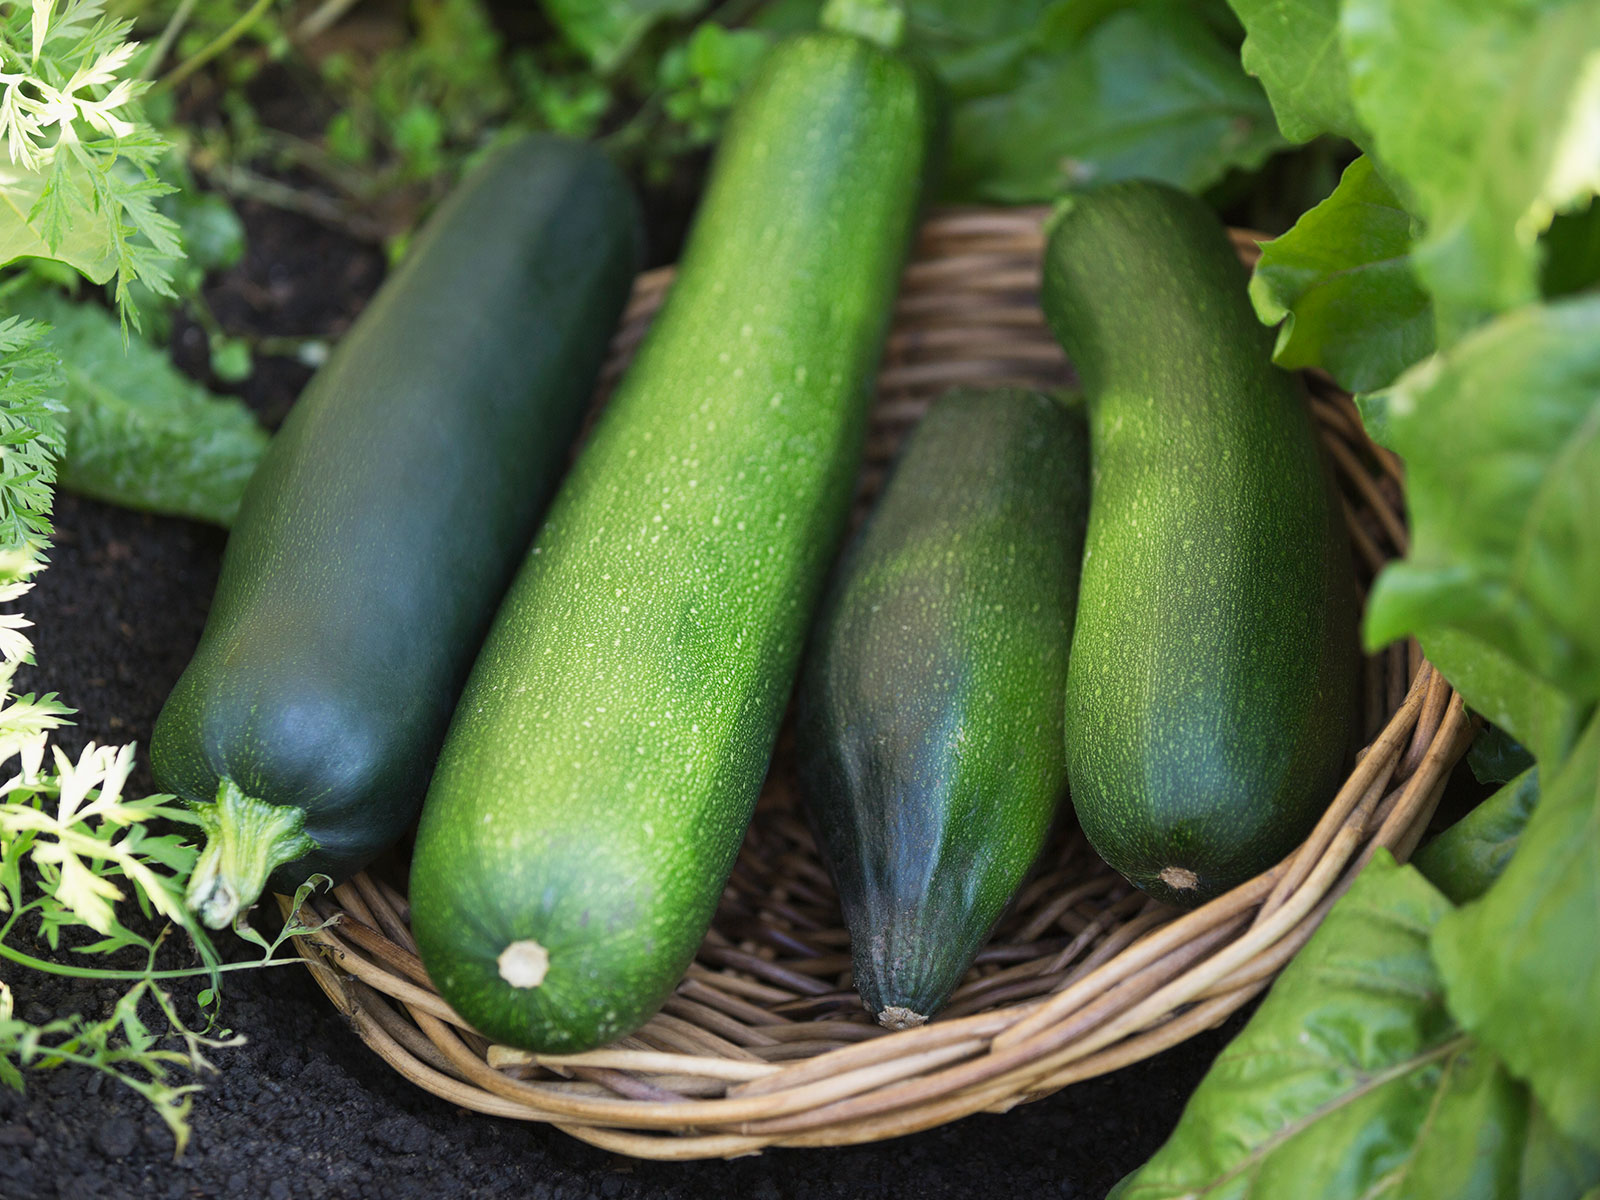 zucchini in baskets for national zucchini on porch day